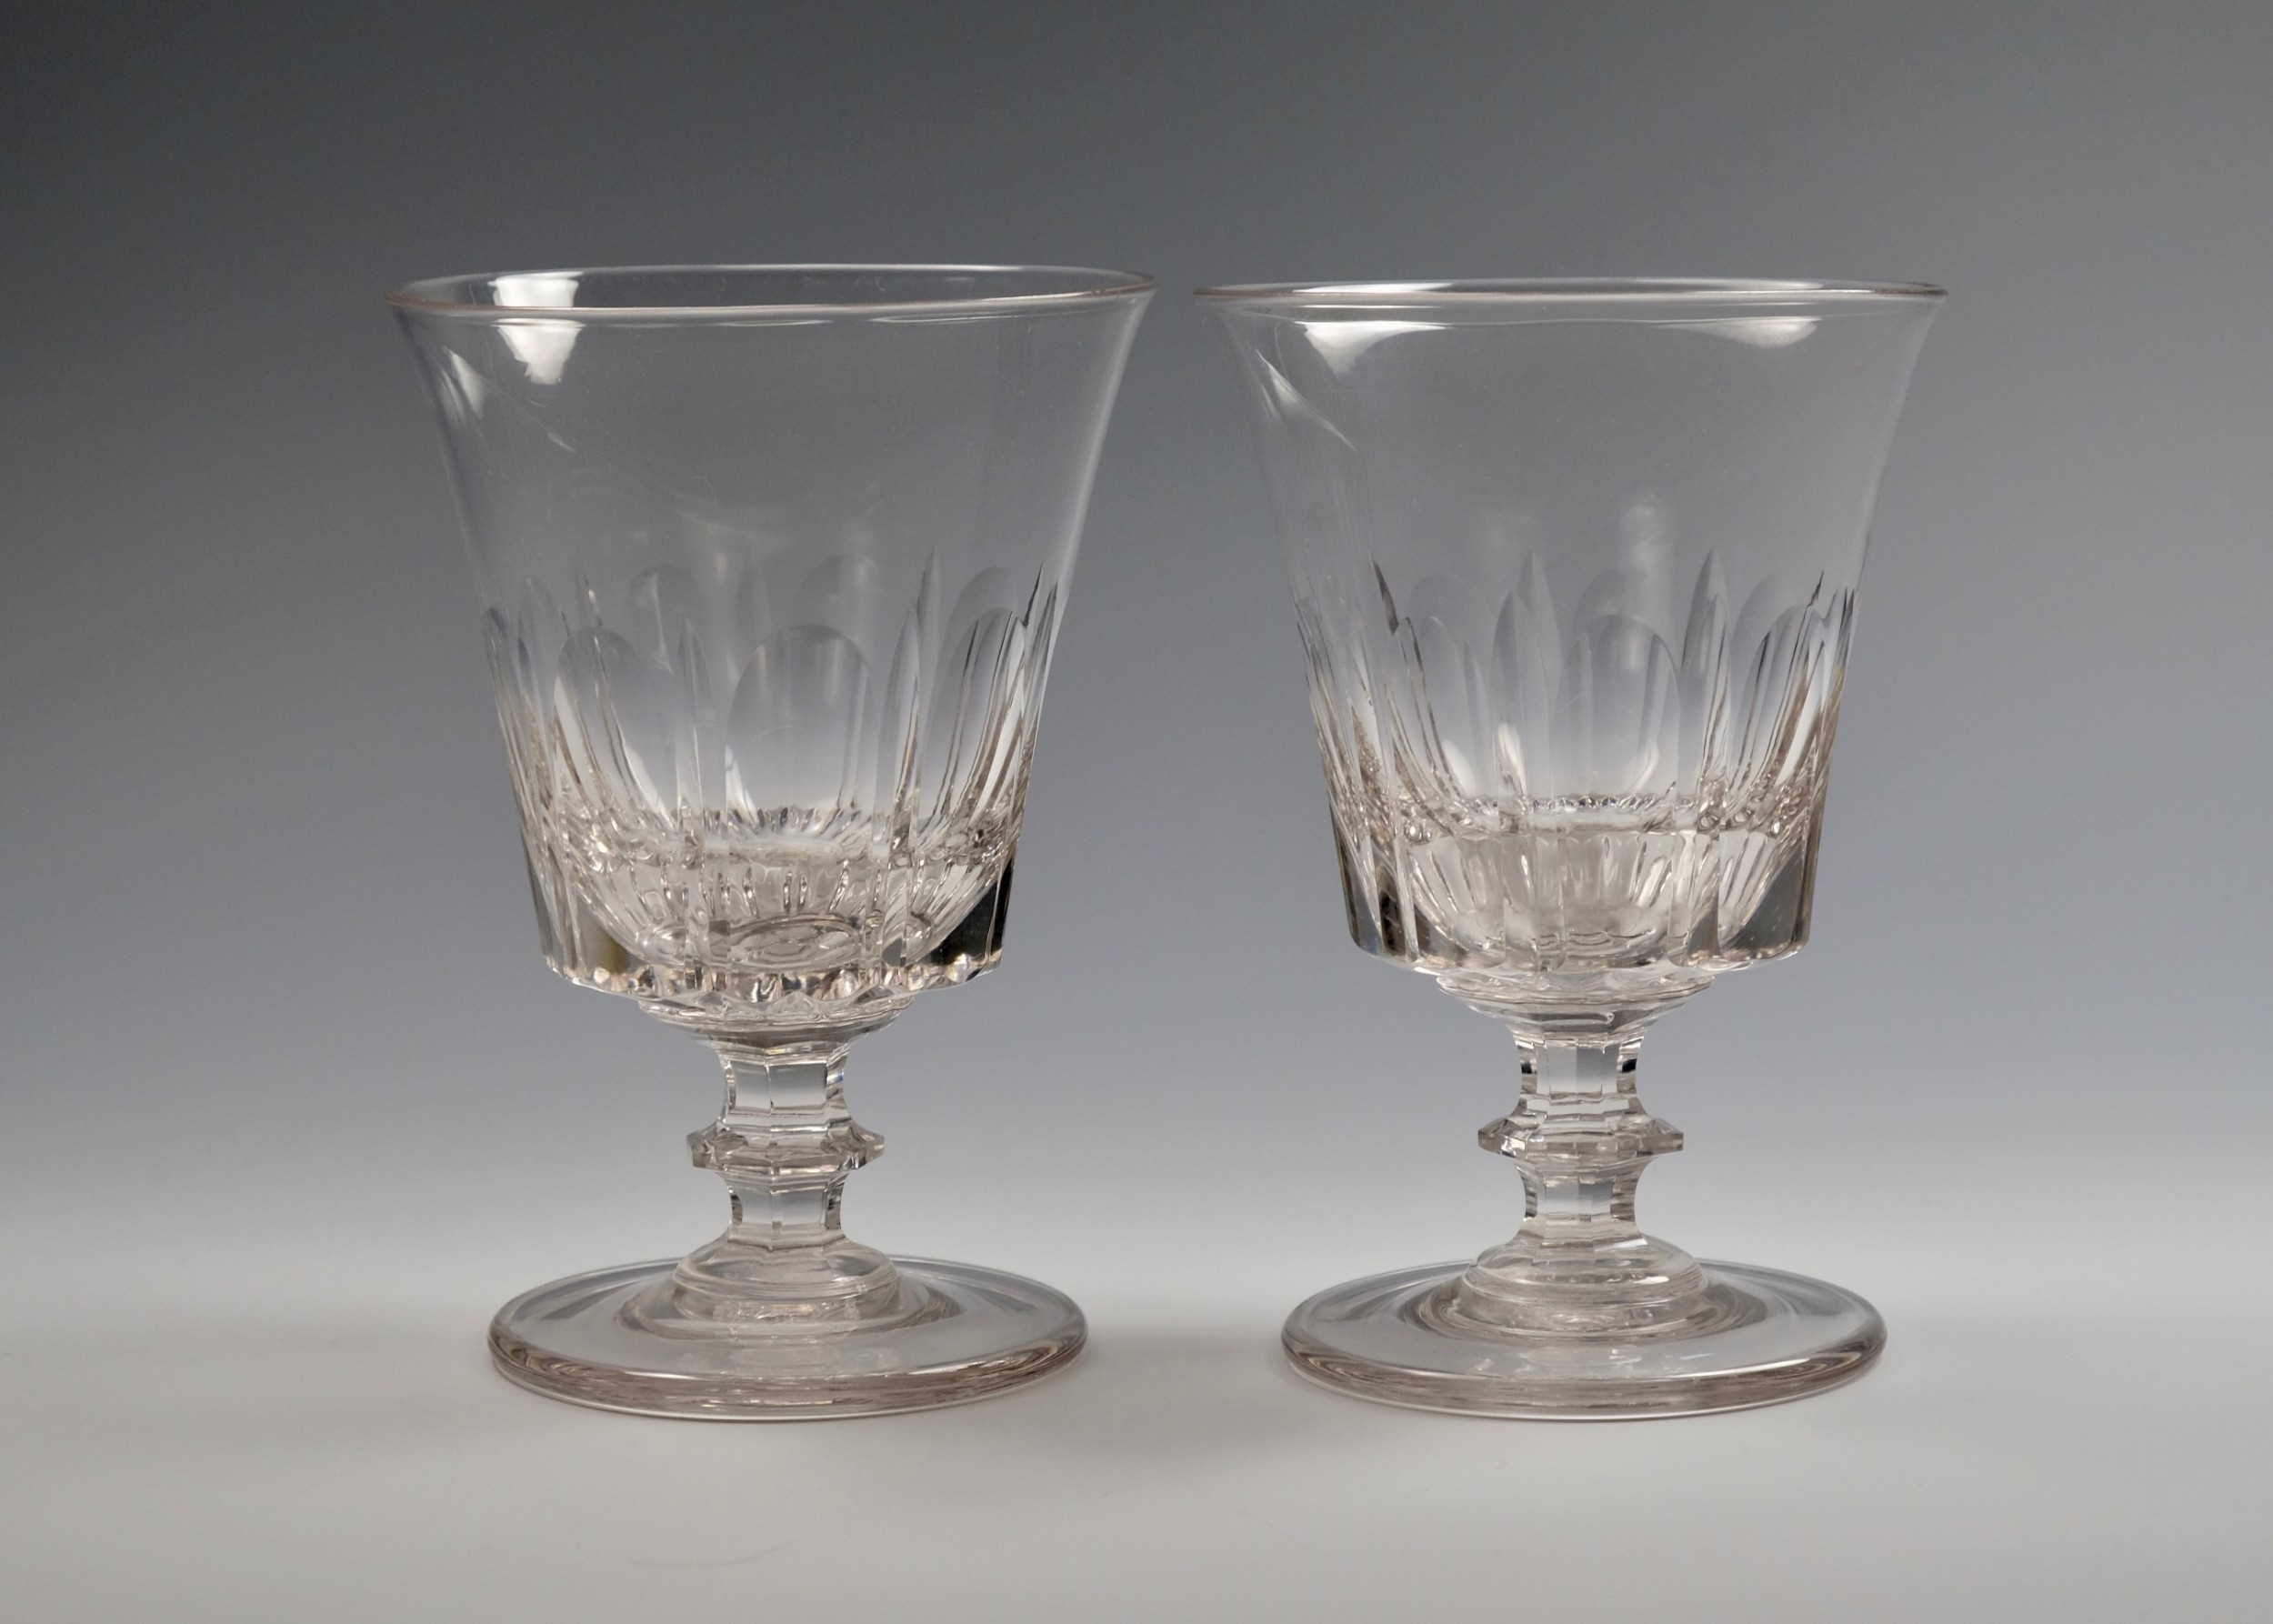 fine pair of bucket bowl rummers english c1830